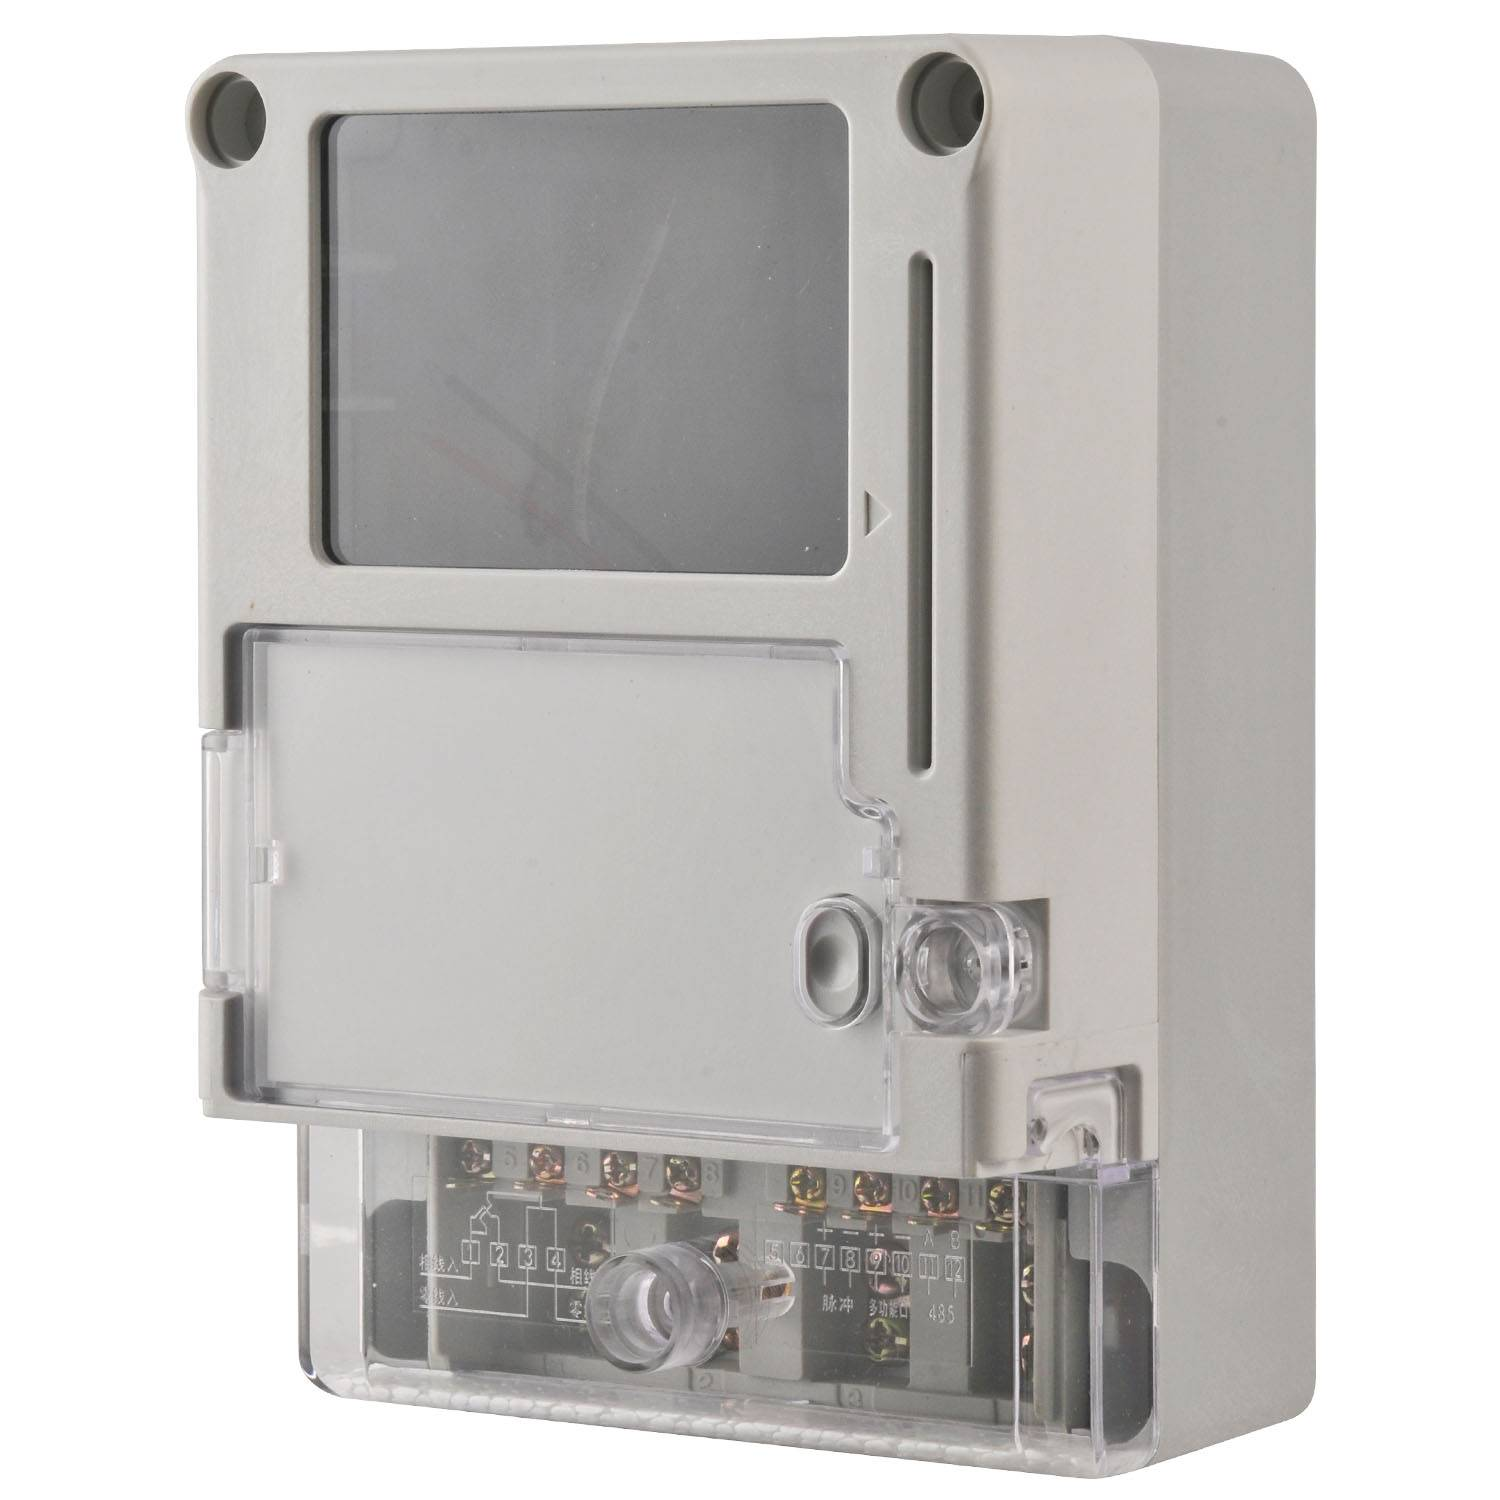 Single-phase electric meter case 2060-2